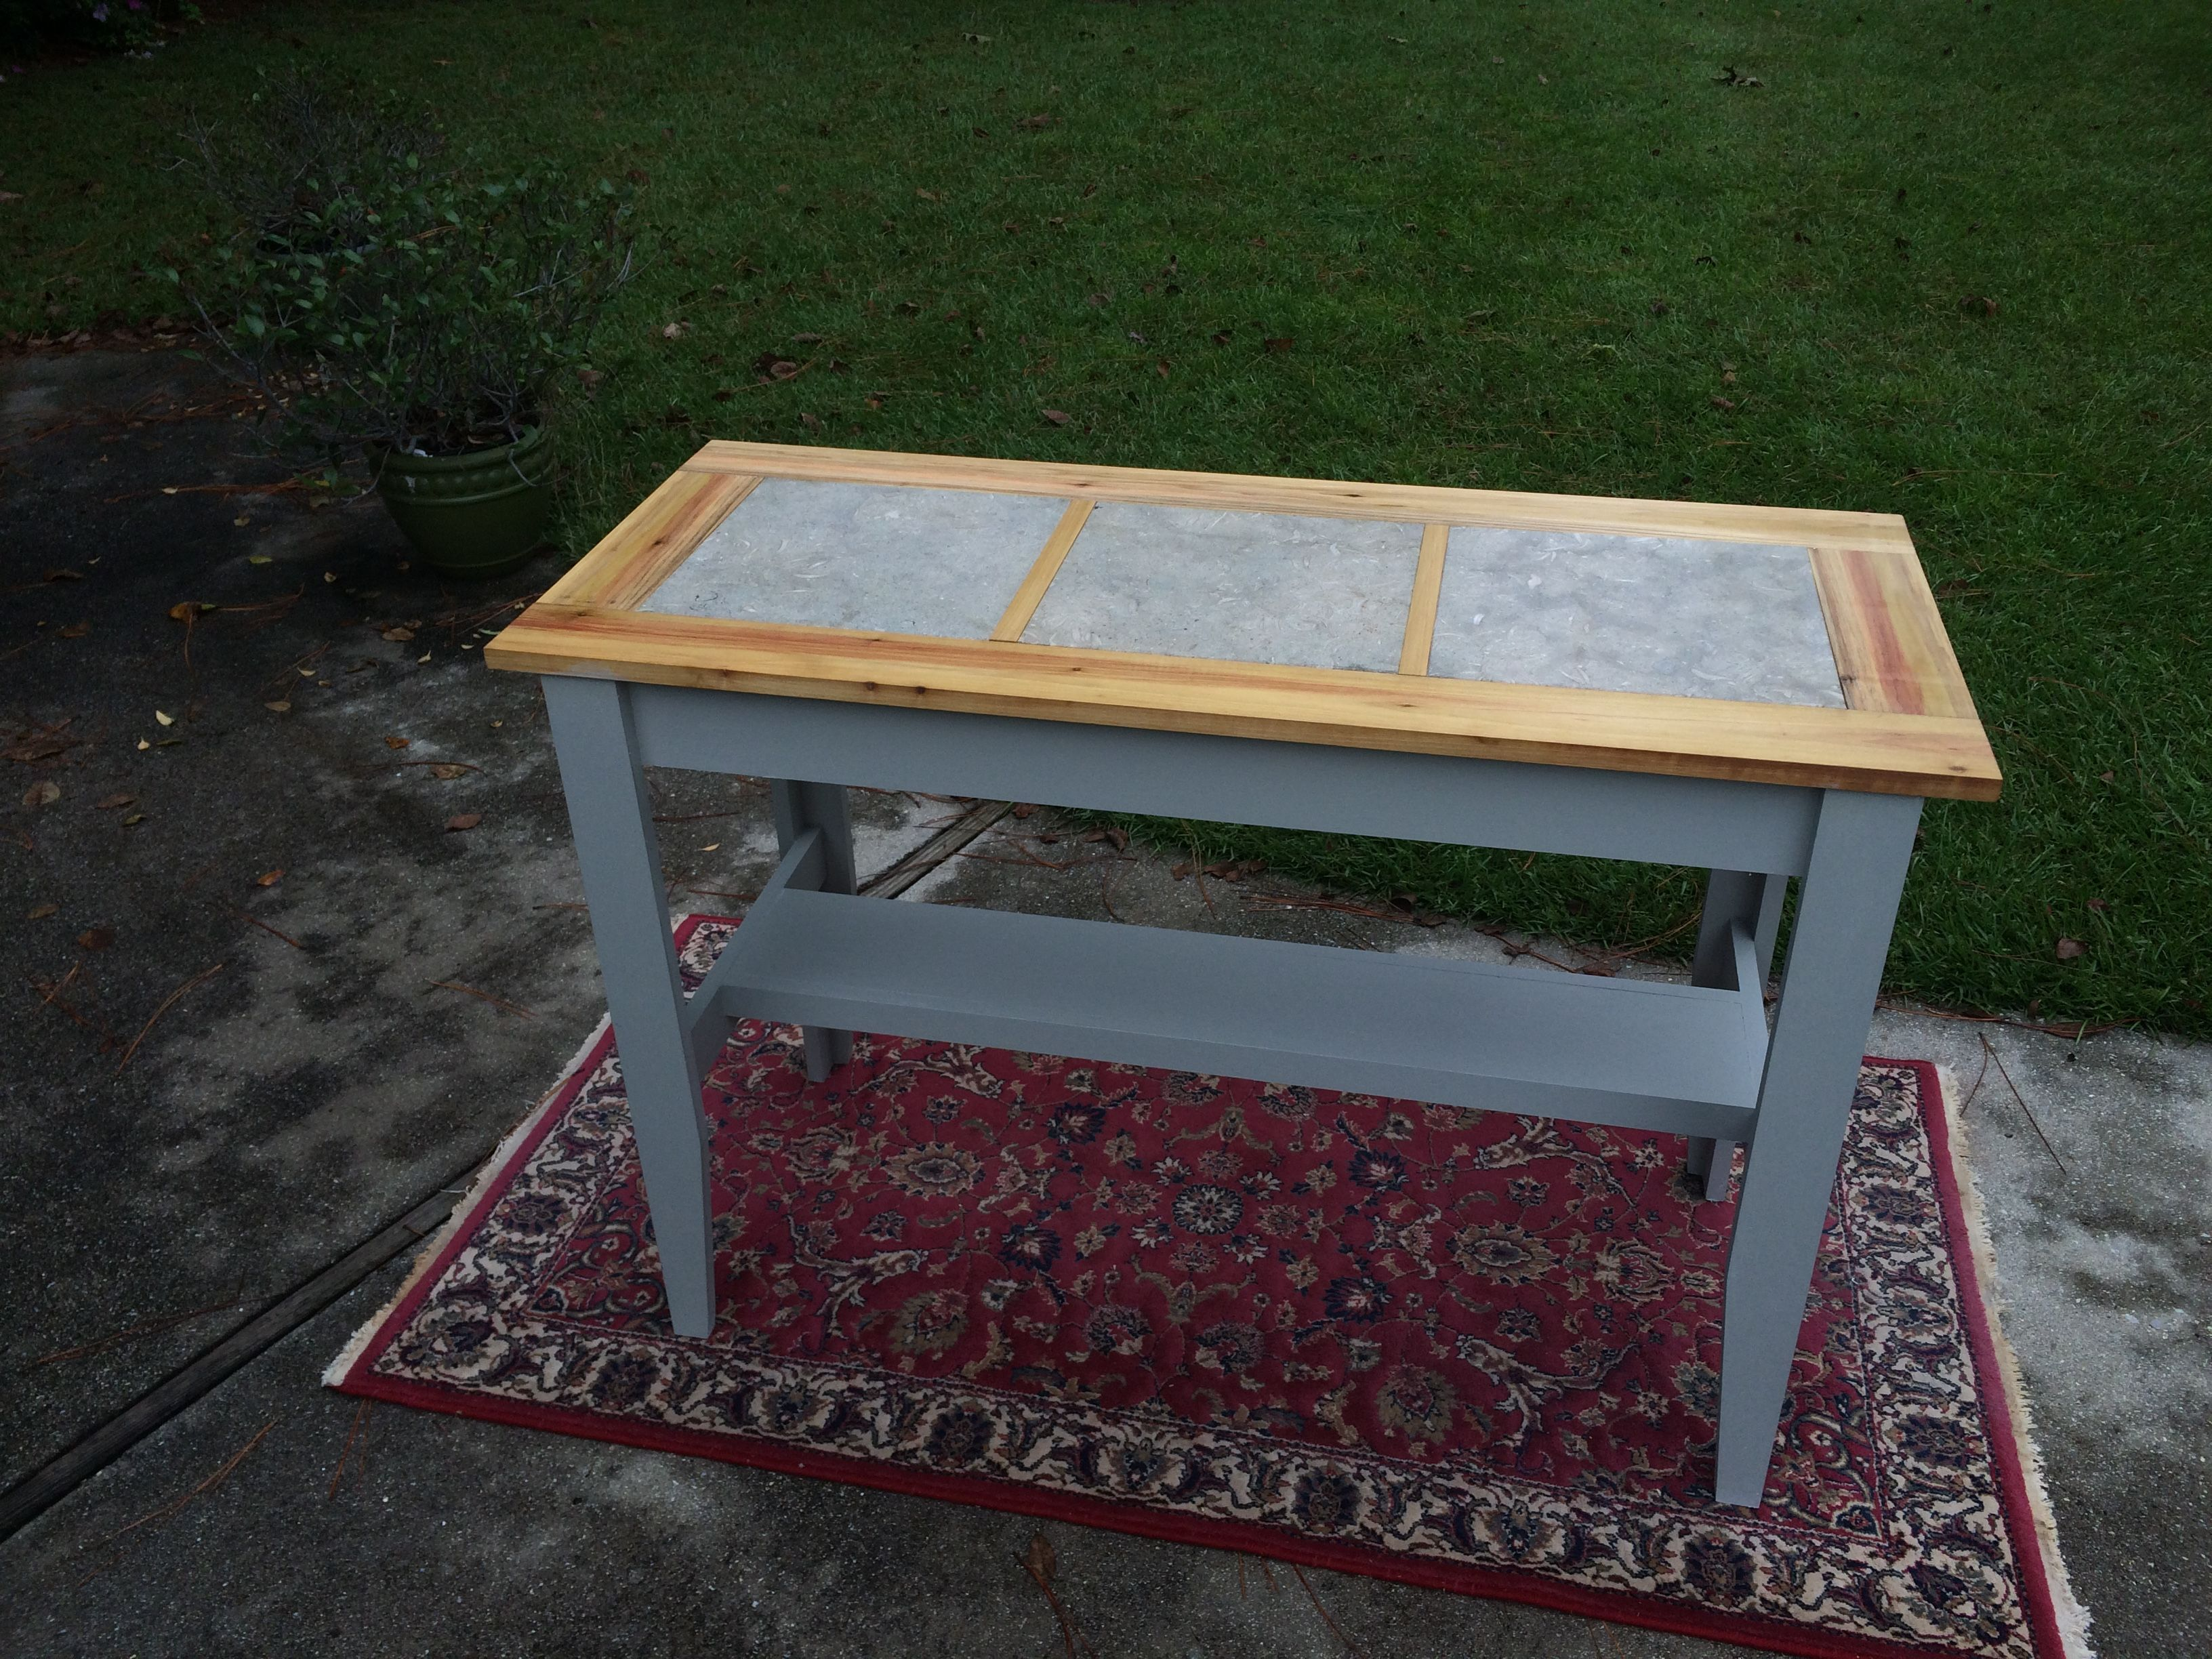 Relatively Buy a Hand Crafted Console Table With Inlaid Ceramic Tile. Perfect  RQ15